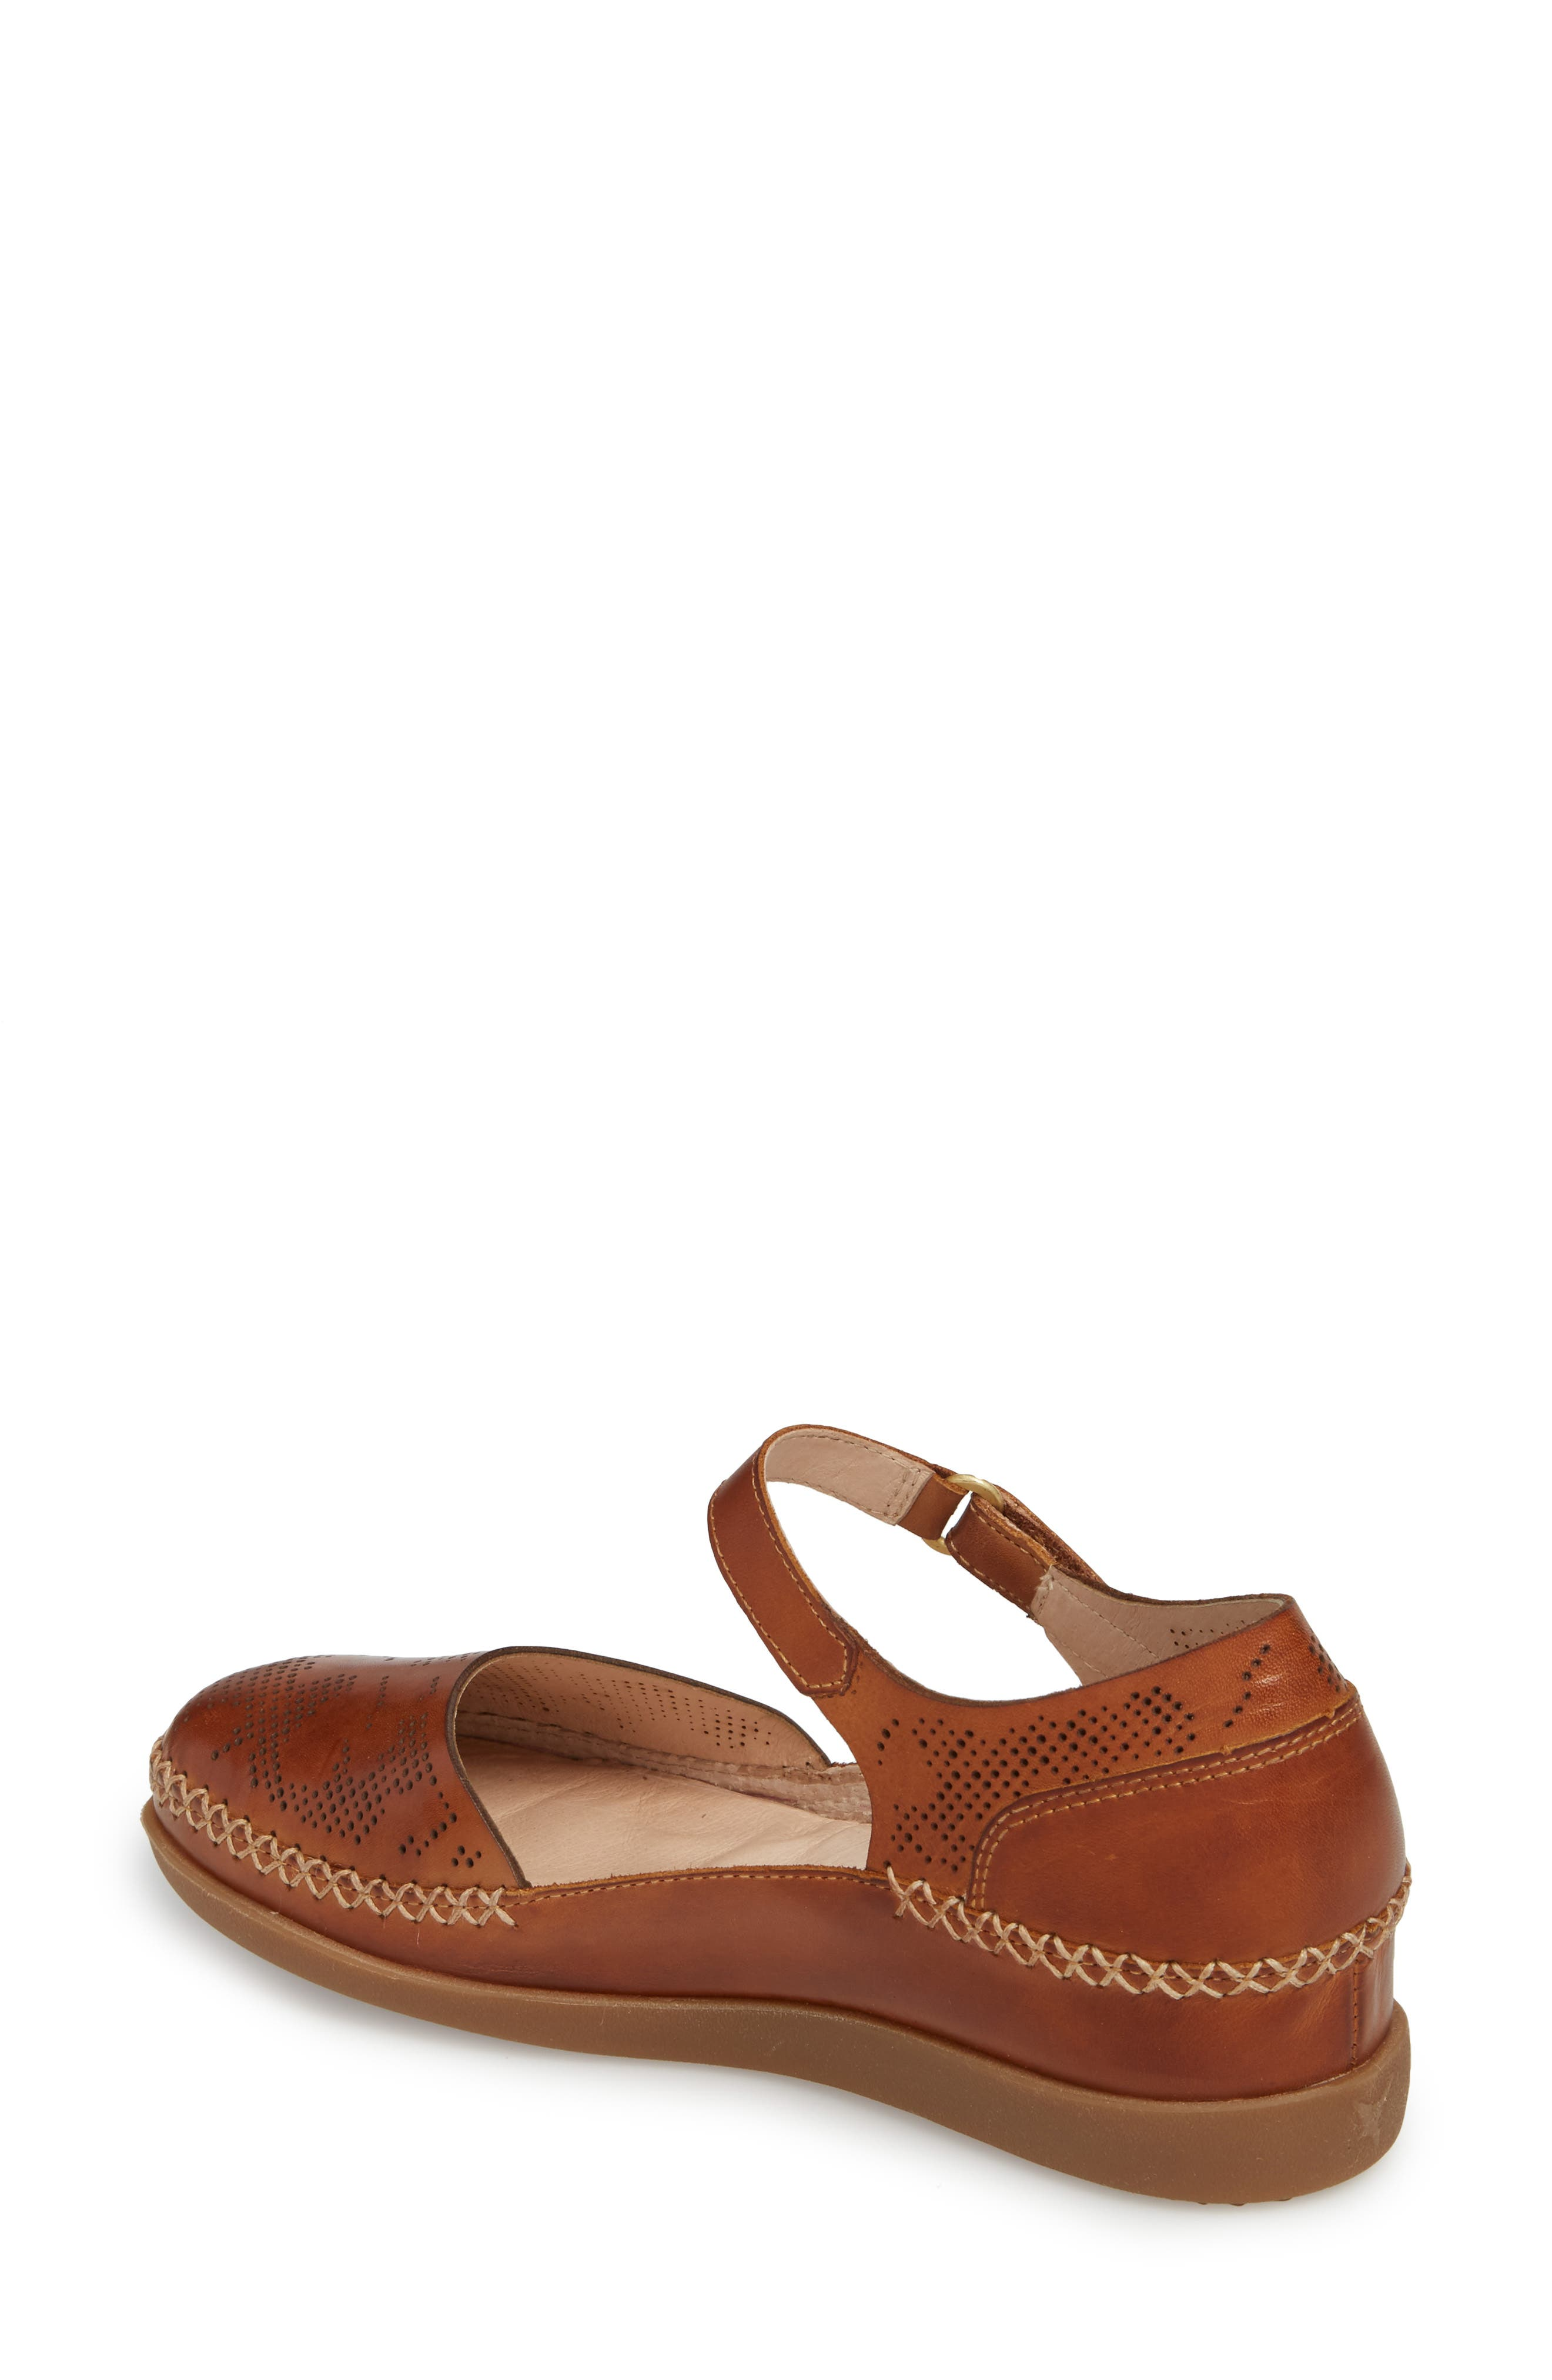 Cadaques Flat,                             Alternate thumbnail 2, color,                             BRANDY LEATHER